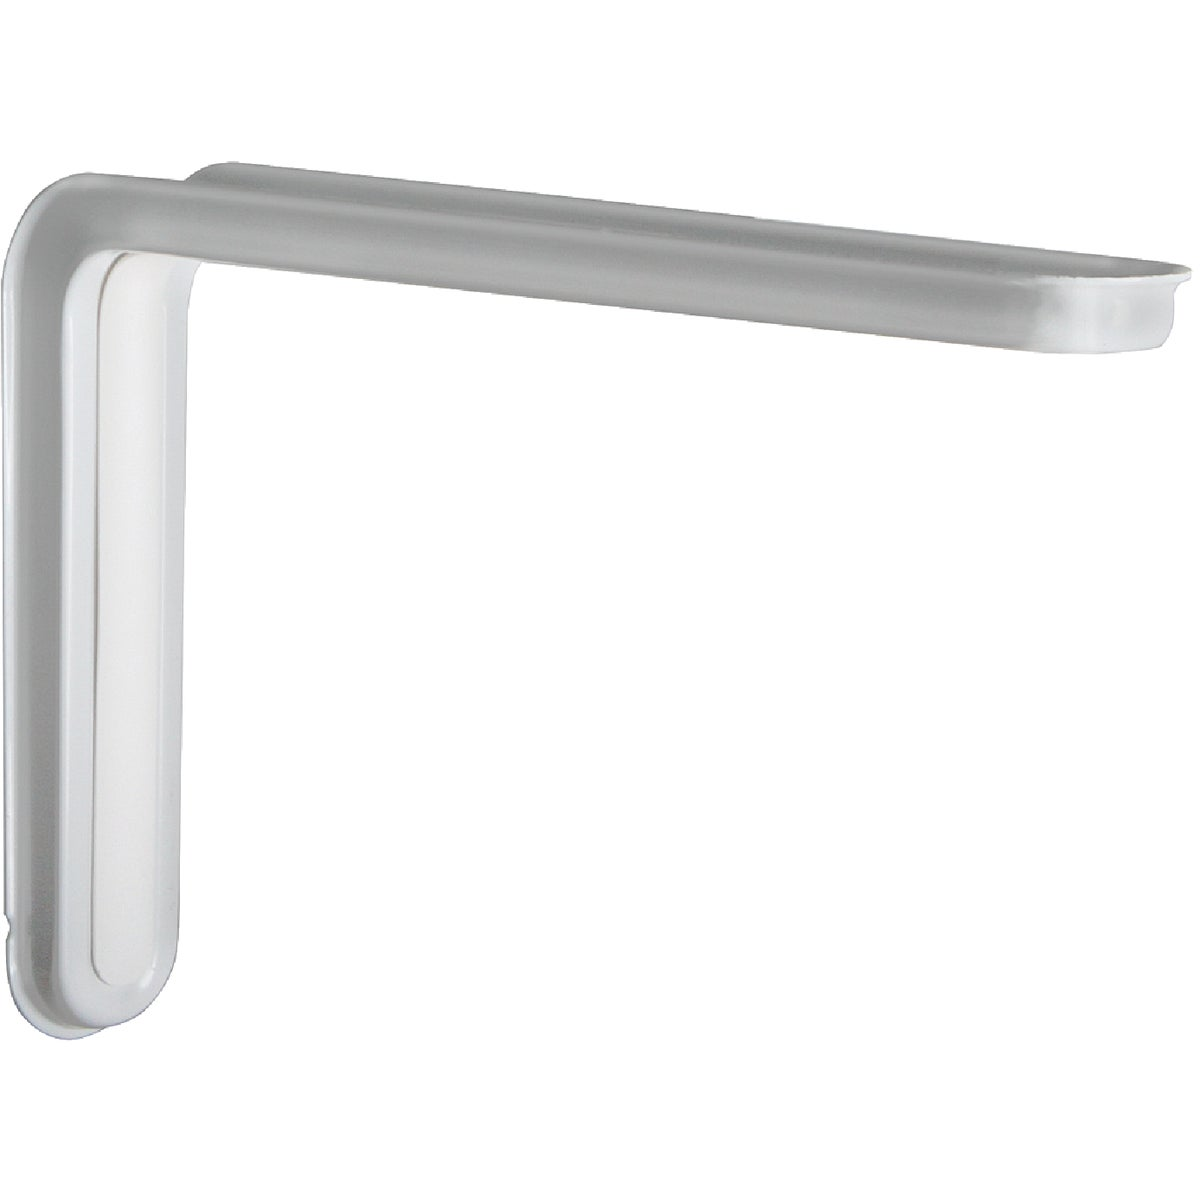 "10"" WHITE BRACKET - 215SP by Knape & Vogt Mfg Co"